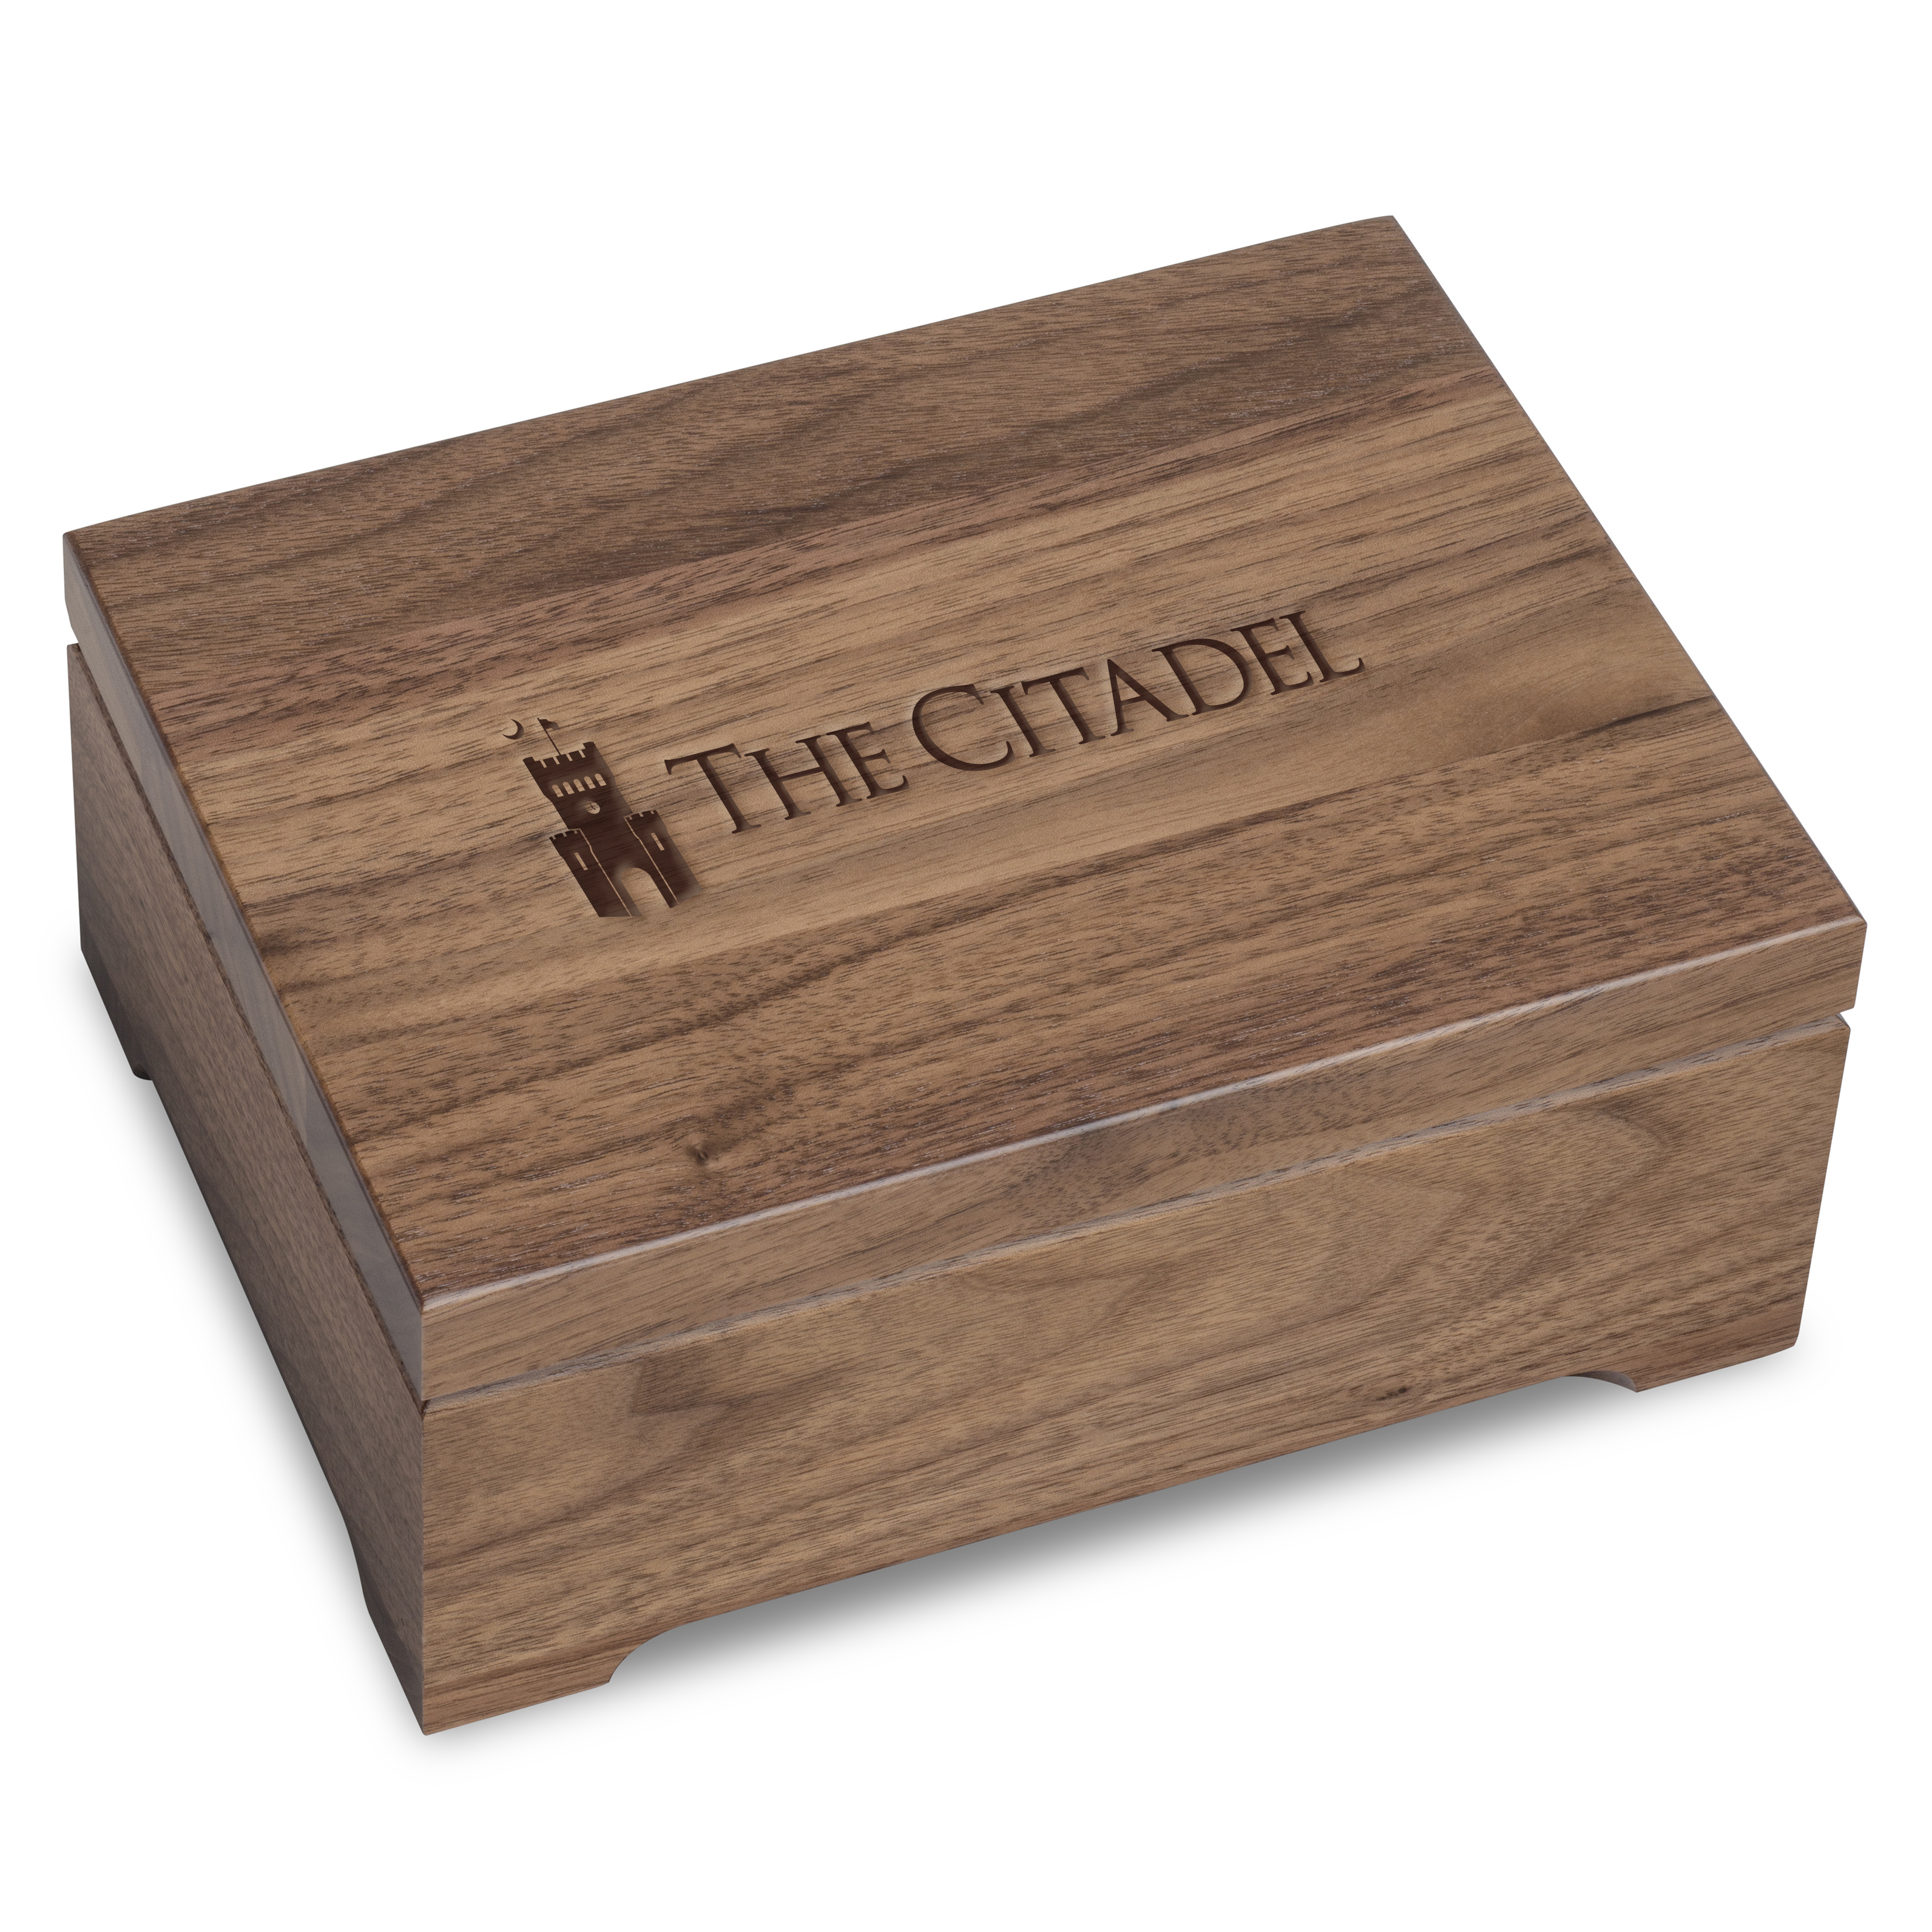 Citadel Solid Walnut Desk Box - Image 1